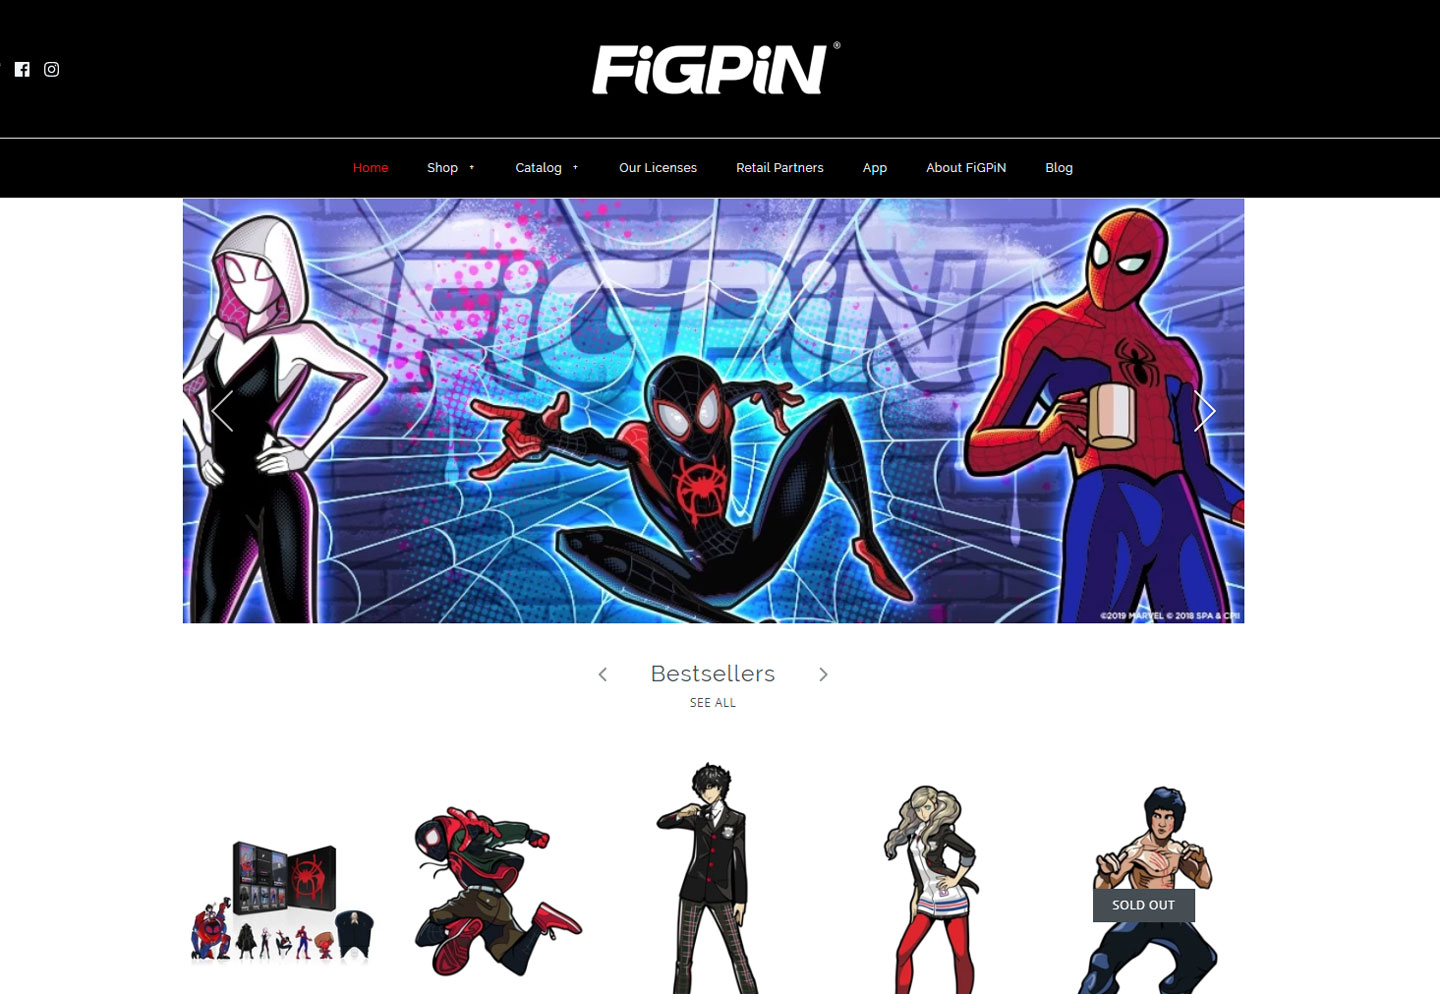 Consumer products website for FiGPiNs built on Shopify